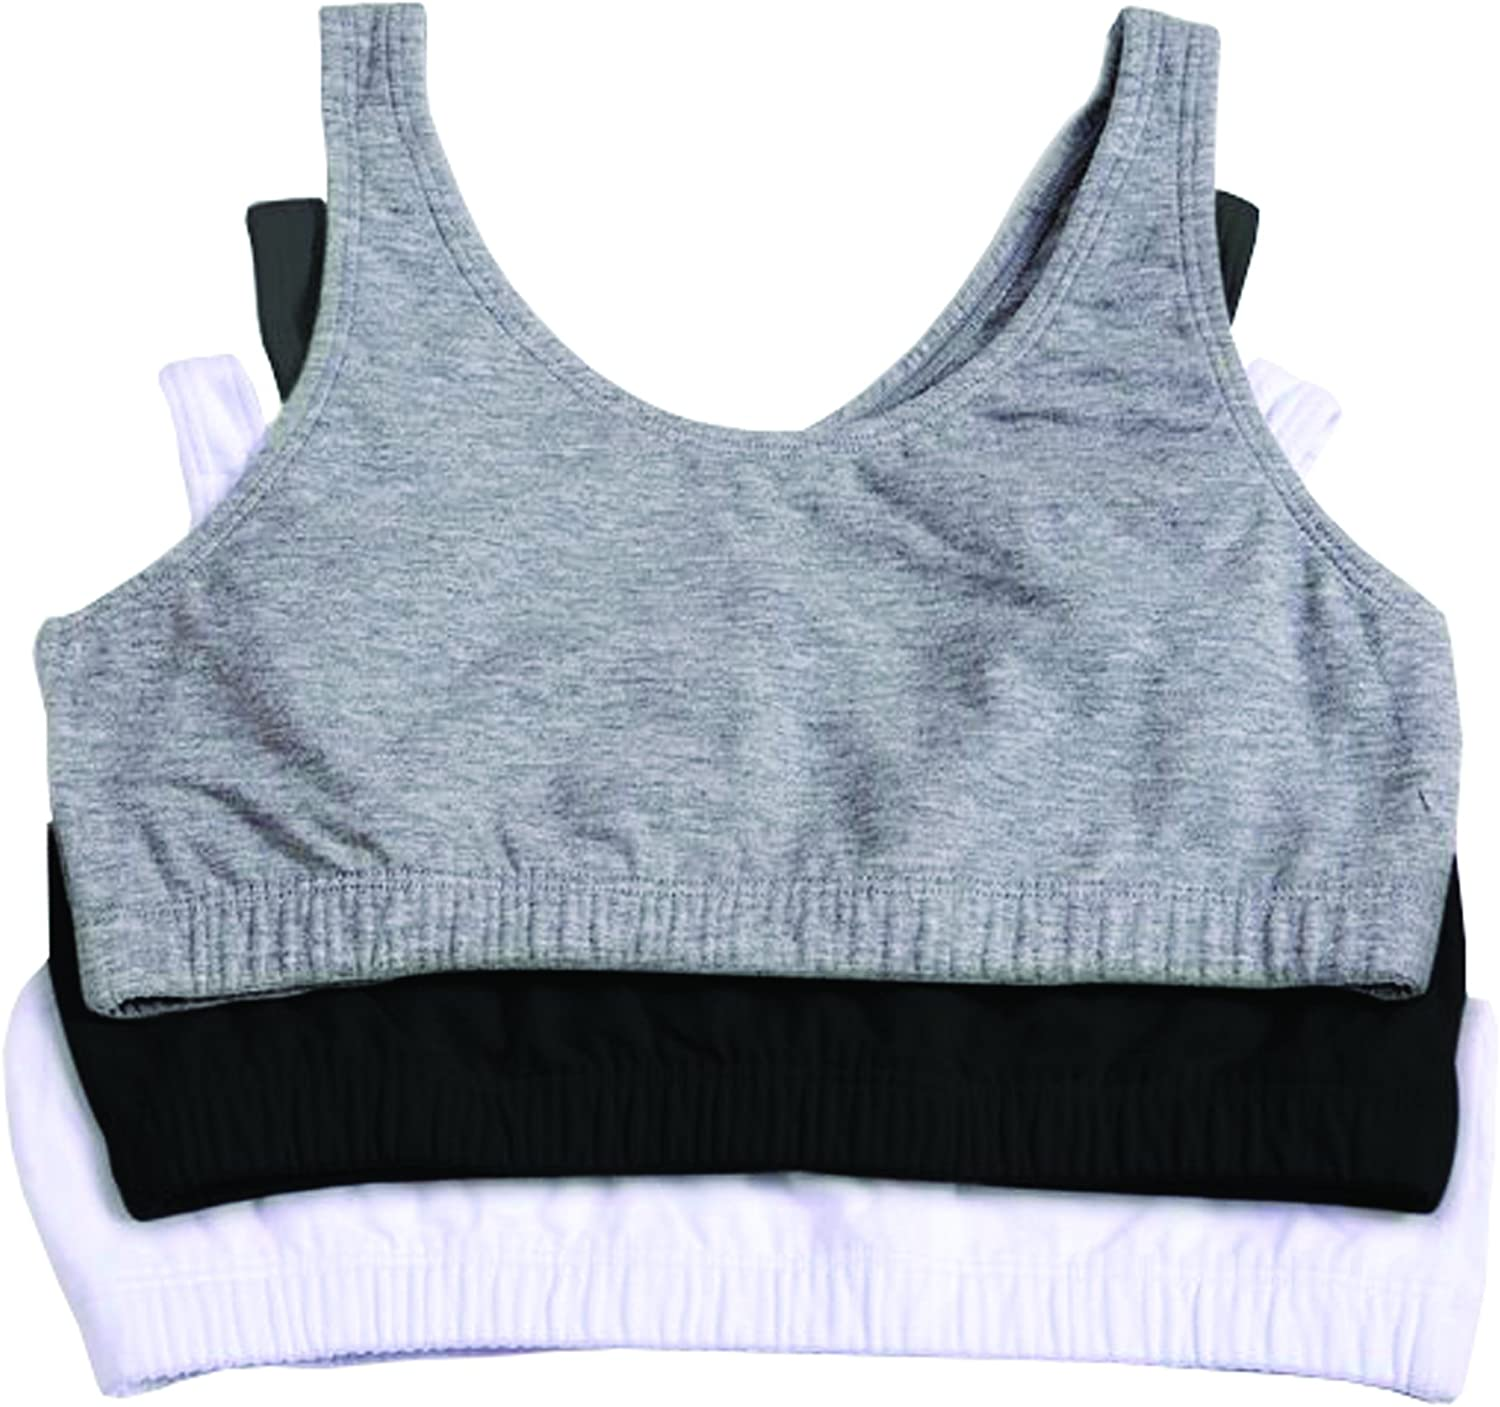 Girls Sports Bras Cotton Diamante Glitter Strappy Top Pack of 5